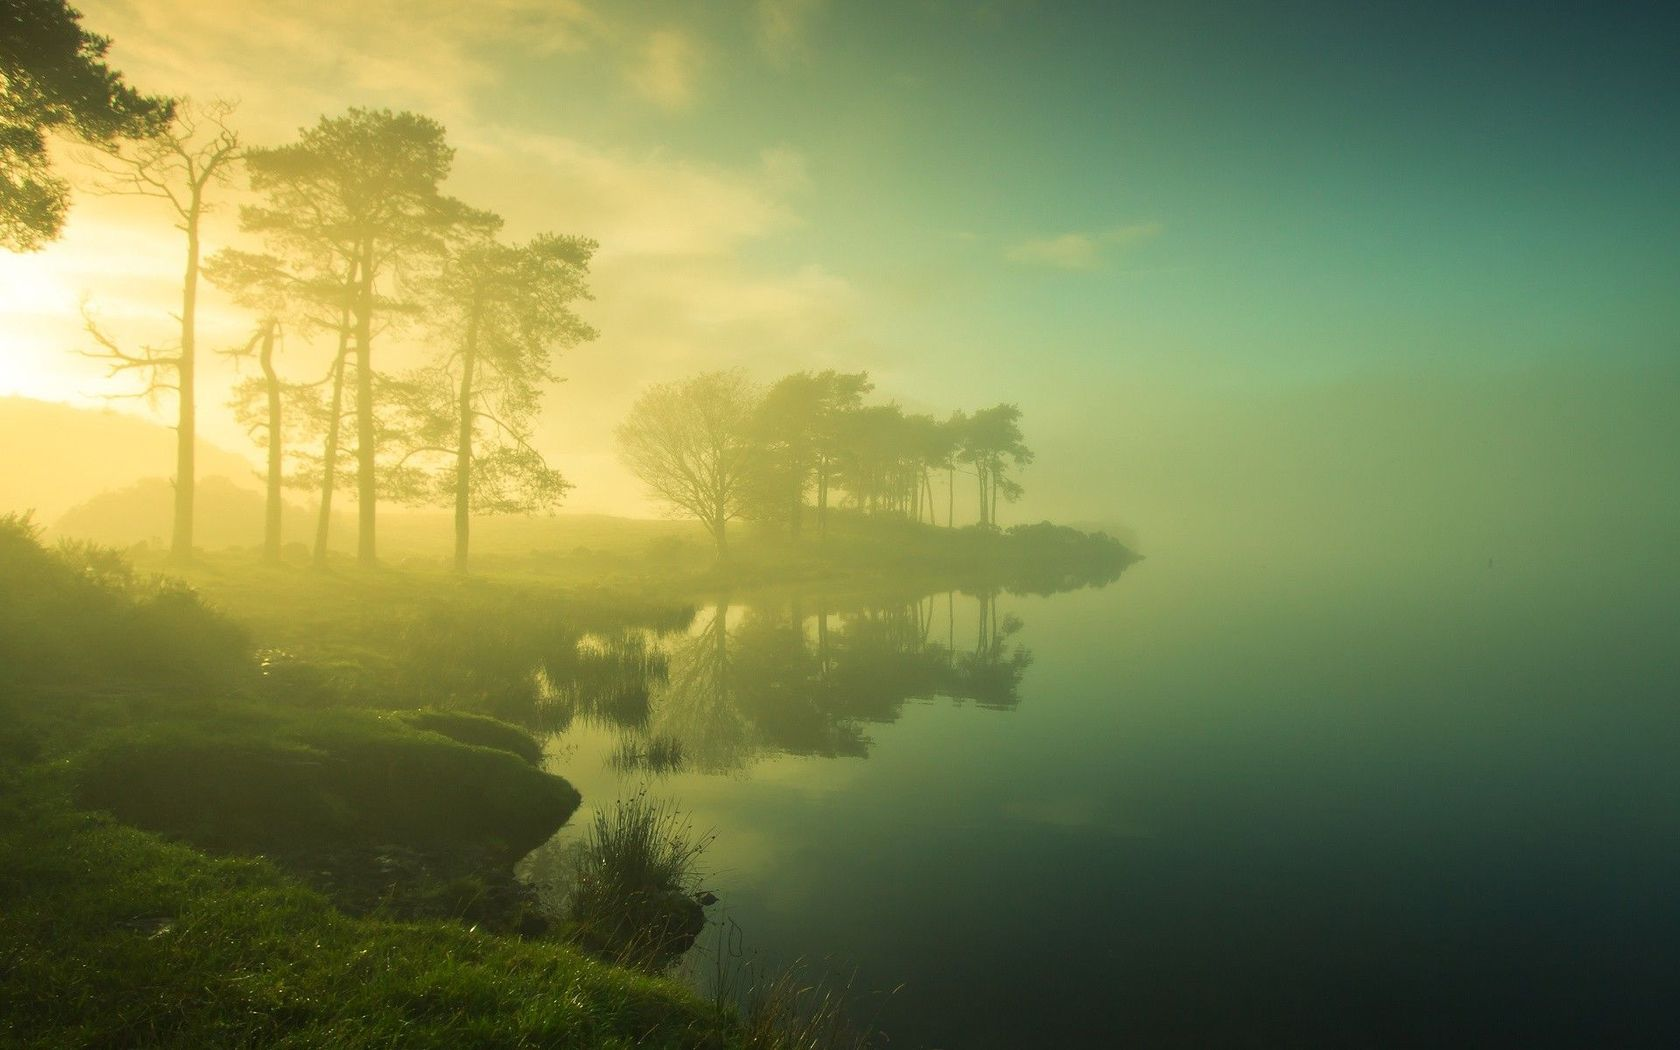 misty fog landscape wallpapers - photo #28